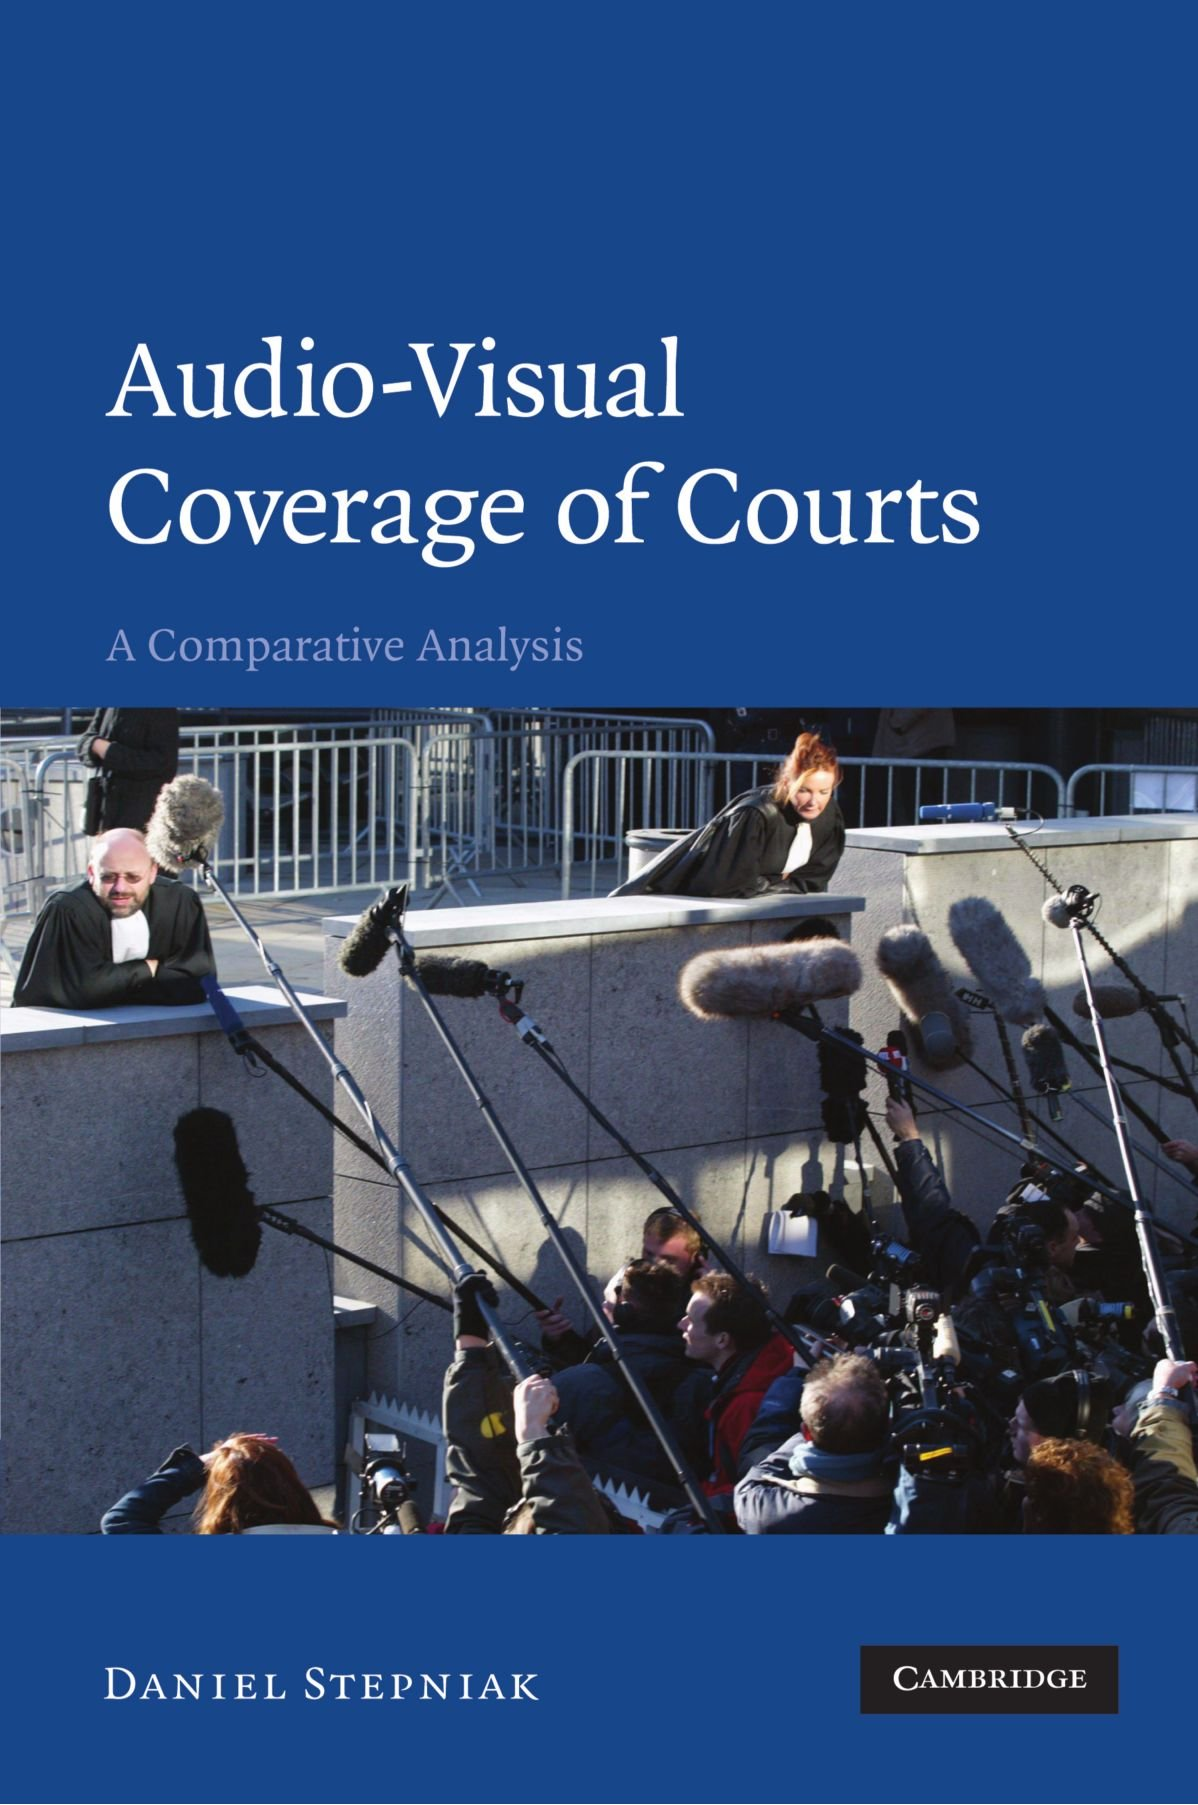 Audio-visual Coverage of Courts: A Comparative Analysis